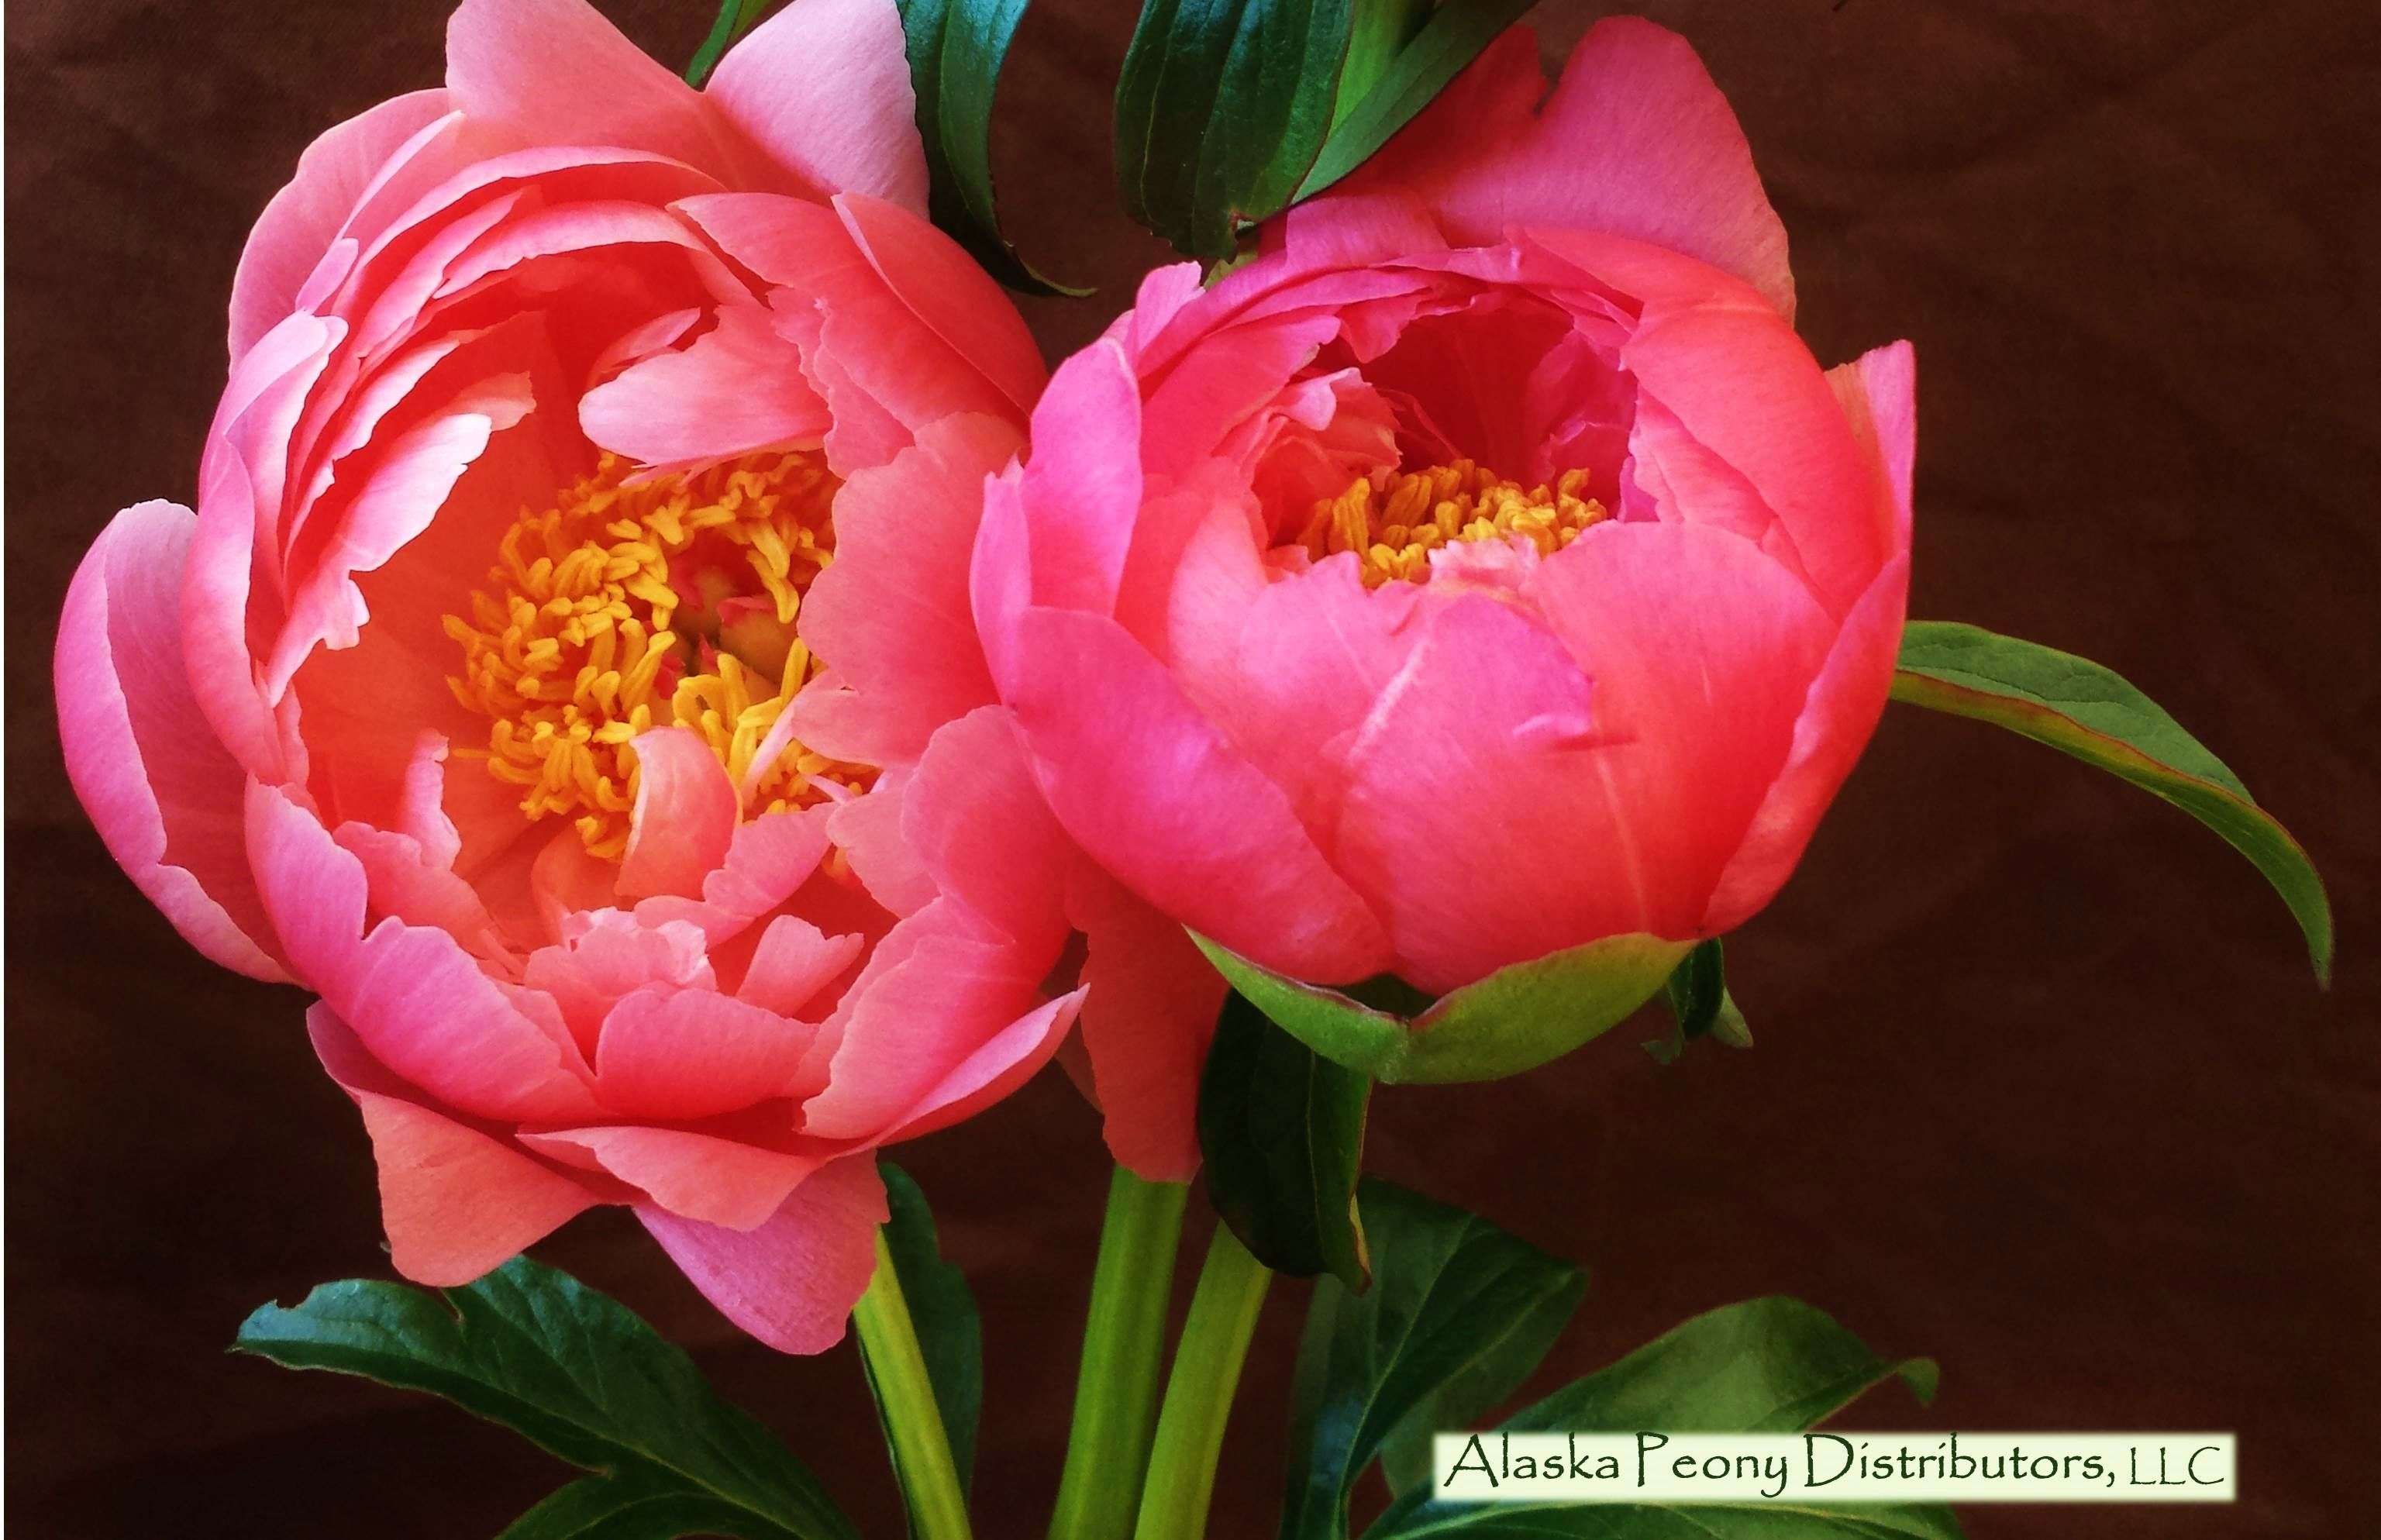 I Just Can T Get Enough Of Those Coral Charm Peonies Here We Have A Pair Fresh Blooming And At The Height Of Their Color Coral Charm Peony Peonies Flowers